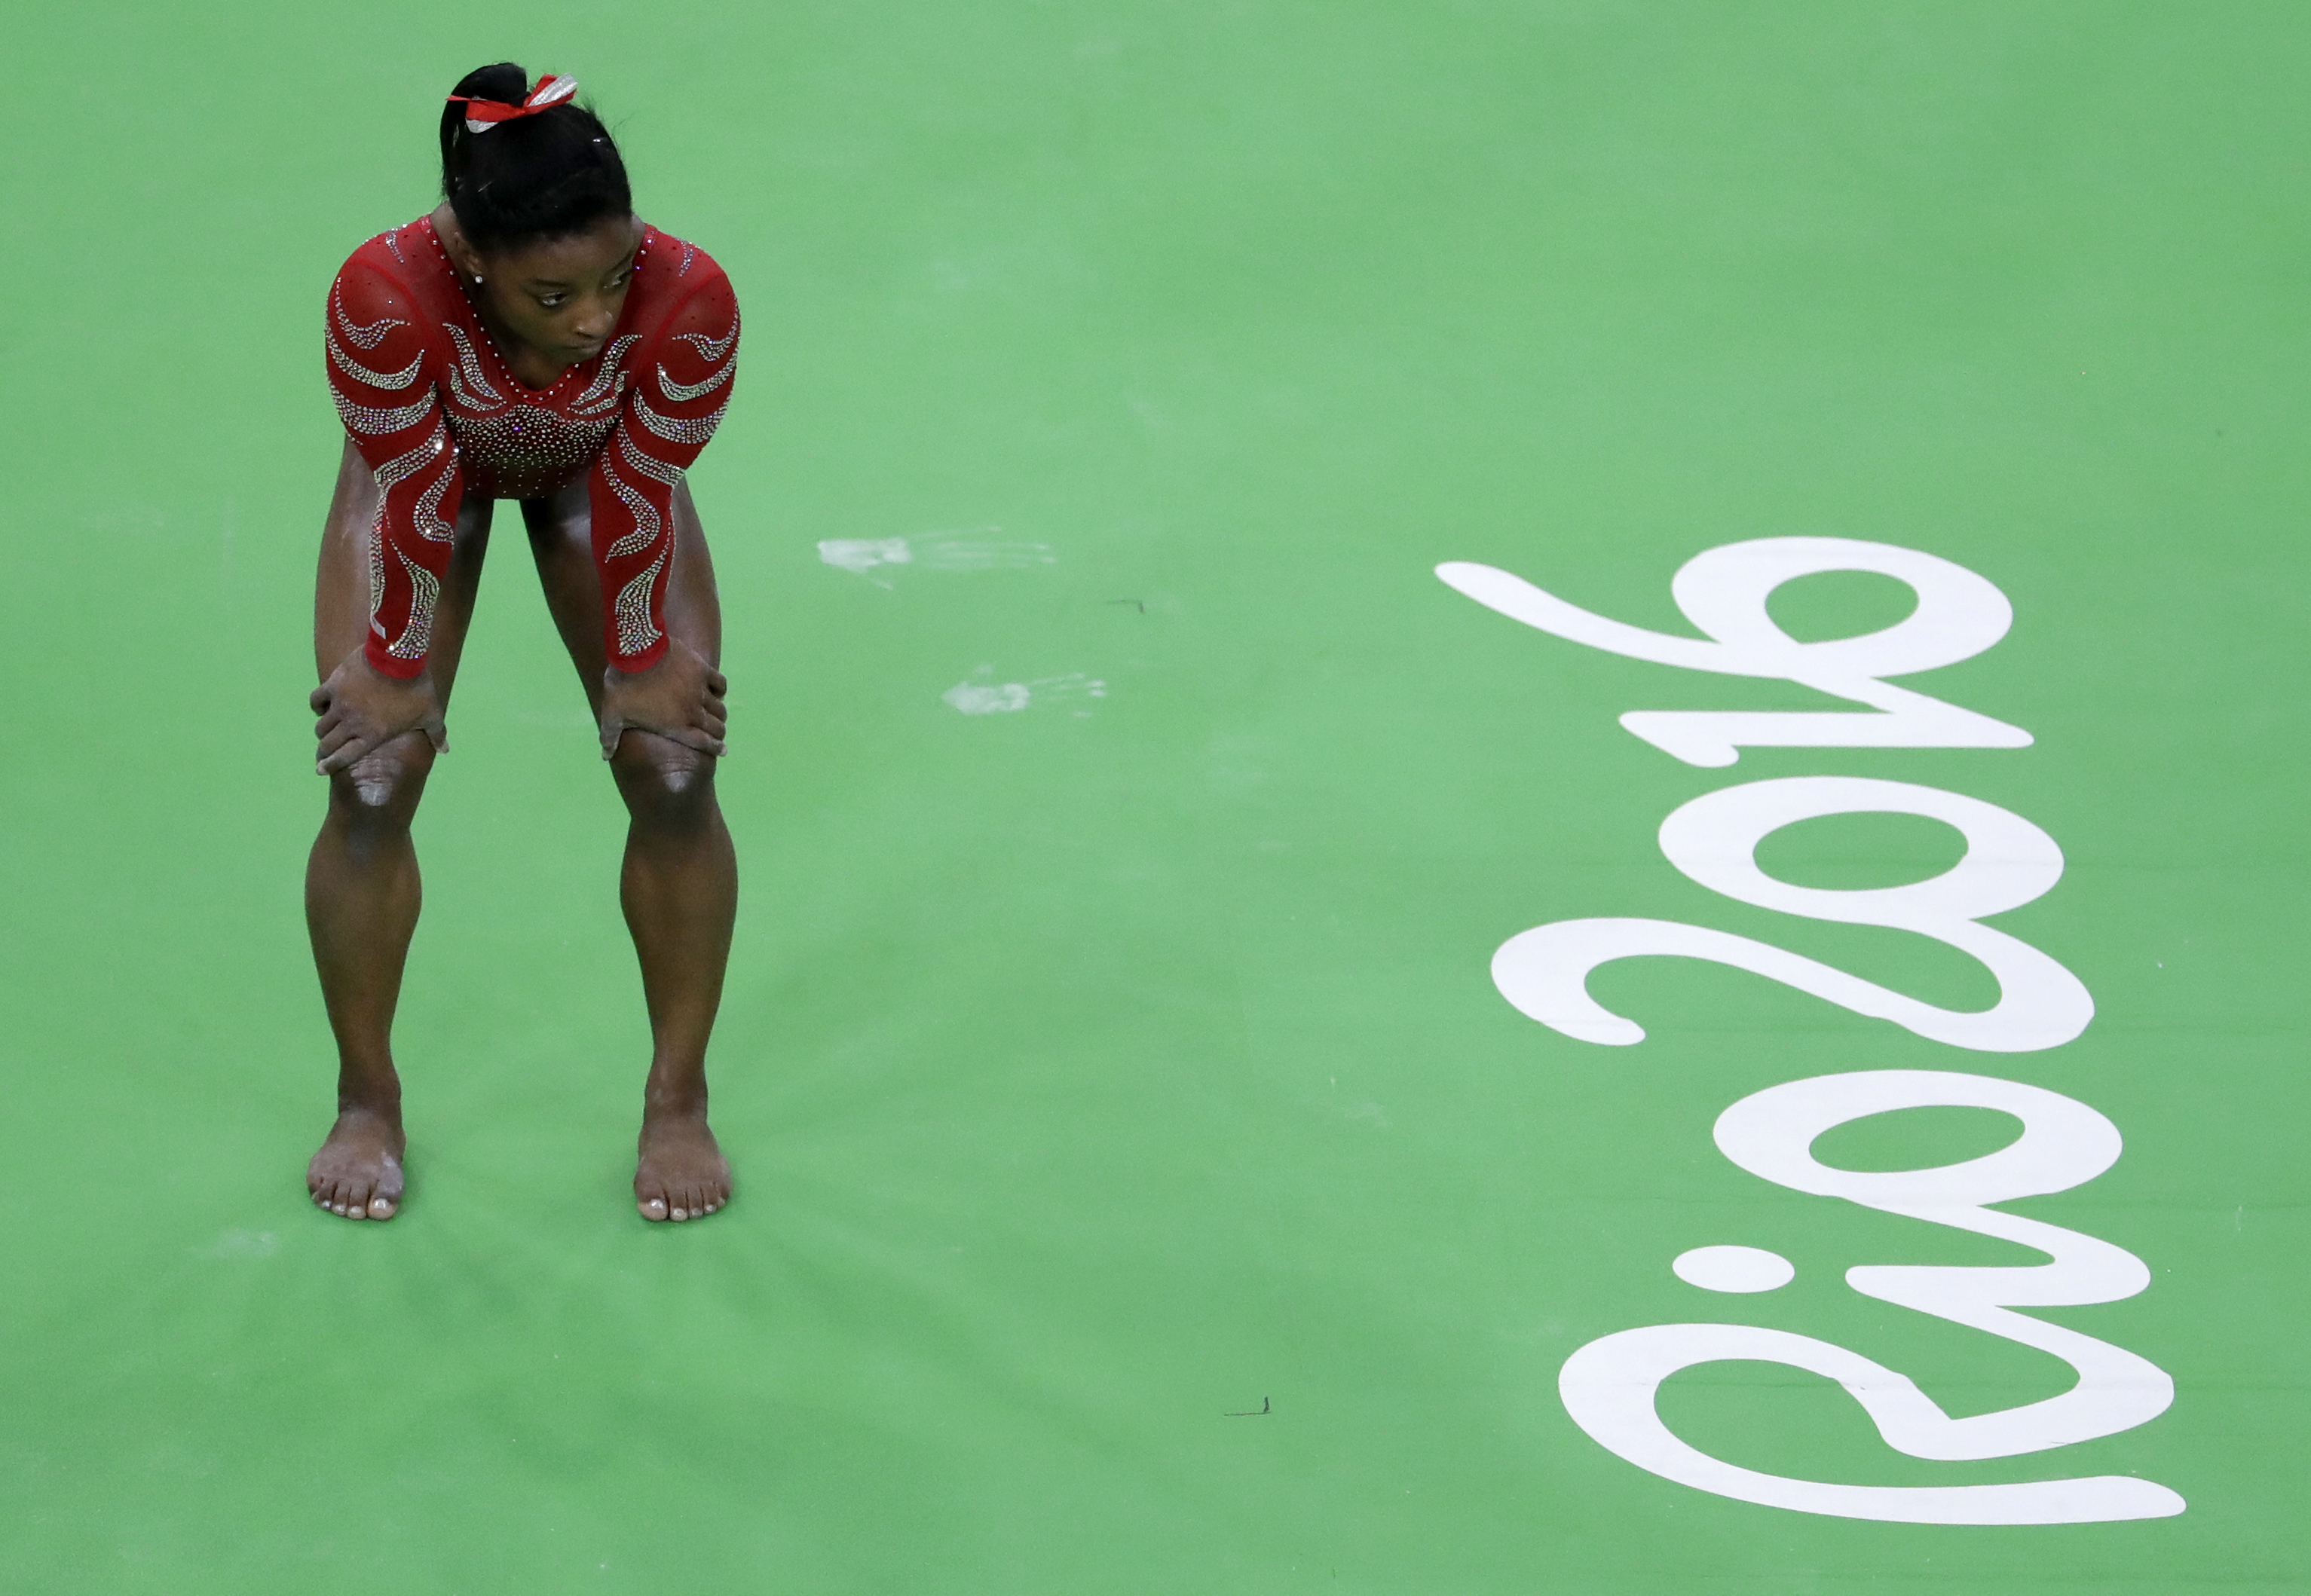 FILE- In this Aug. 4, 2016 file photo United States' Simone Biles waits her turn to train on the beam ahead of the 2016 Summer Olympics in Rio de Janeiro, Brazil. It shouldn't come as a surprise that some of the best-recognized names on the U.S. Olympic t